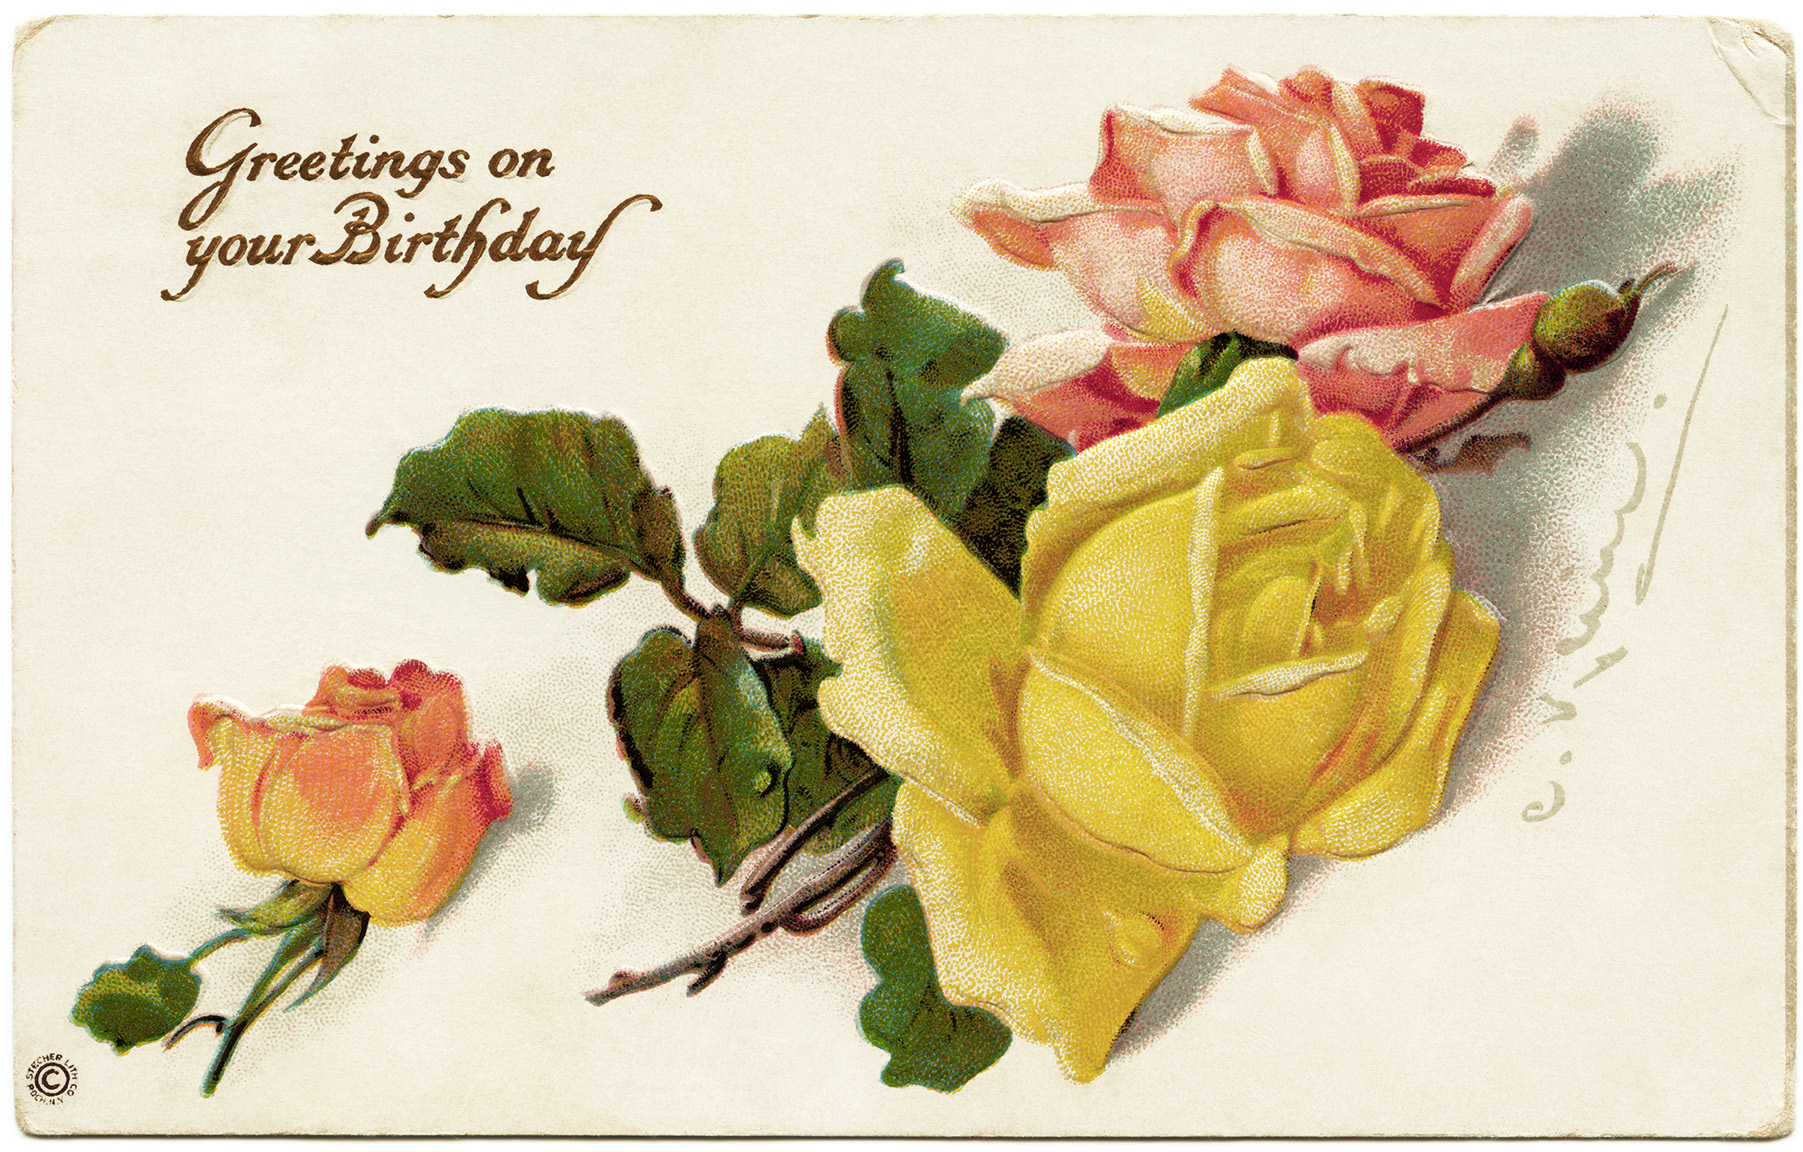 stecher postcard, catherine klein roses, antique birthday postcard, vintage birthday graphic, vintage flower clipart, old roses image